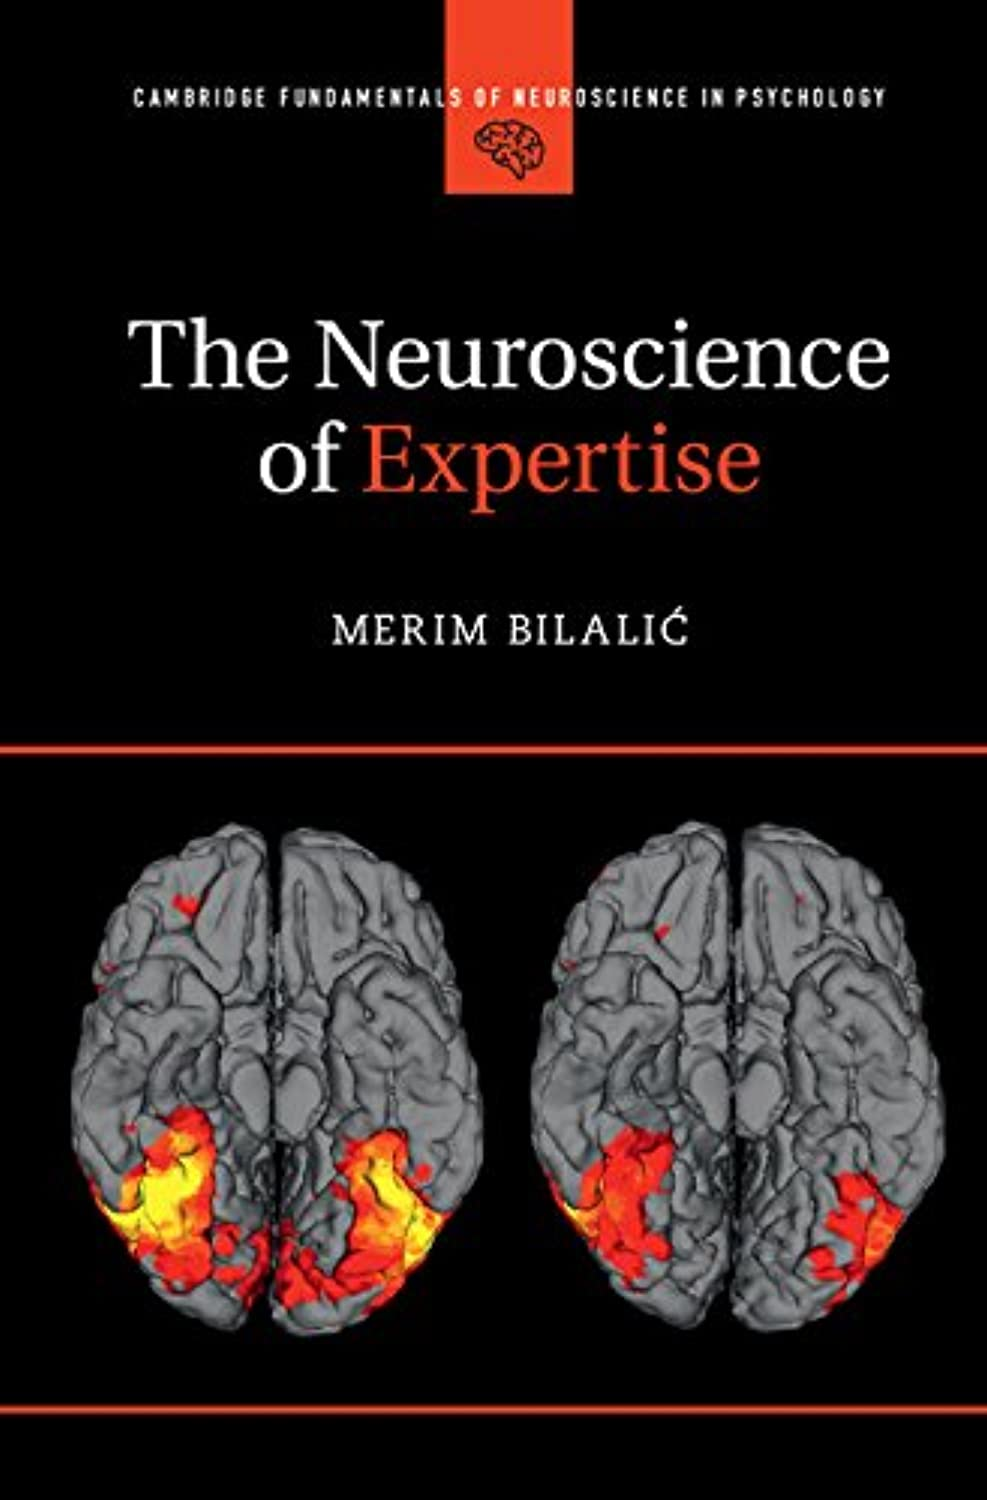 The Neuroscience of Expertise (Cambridge Fundamentals of Neuroscience in Psychology) (English Edition)